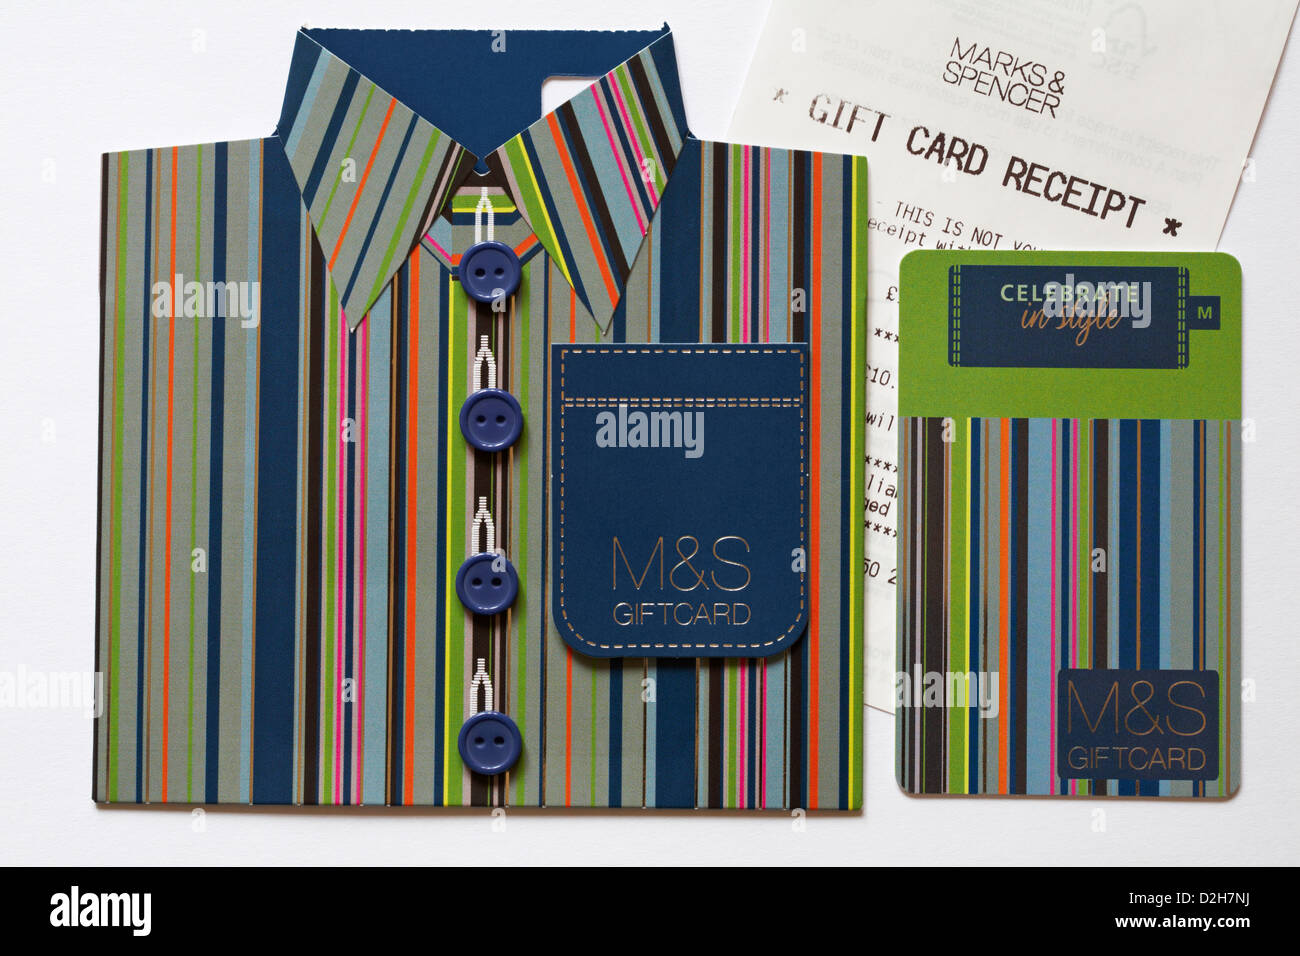 Celebrate in style with M&S giftcard in shape of striped shirt with Marks & Spencer gift